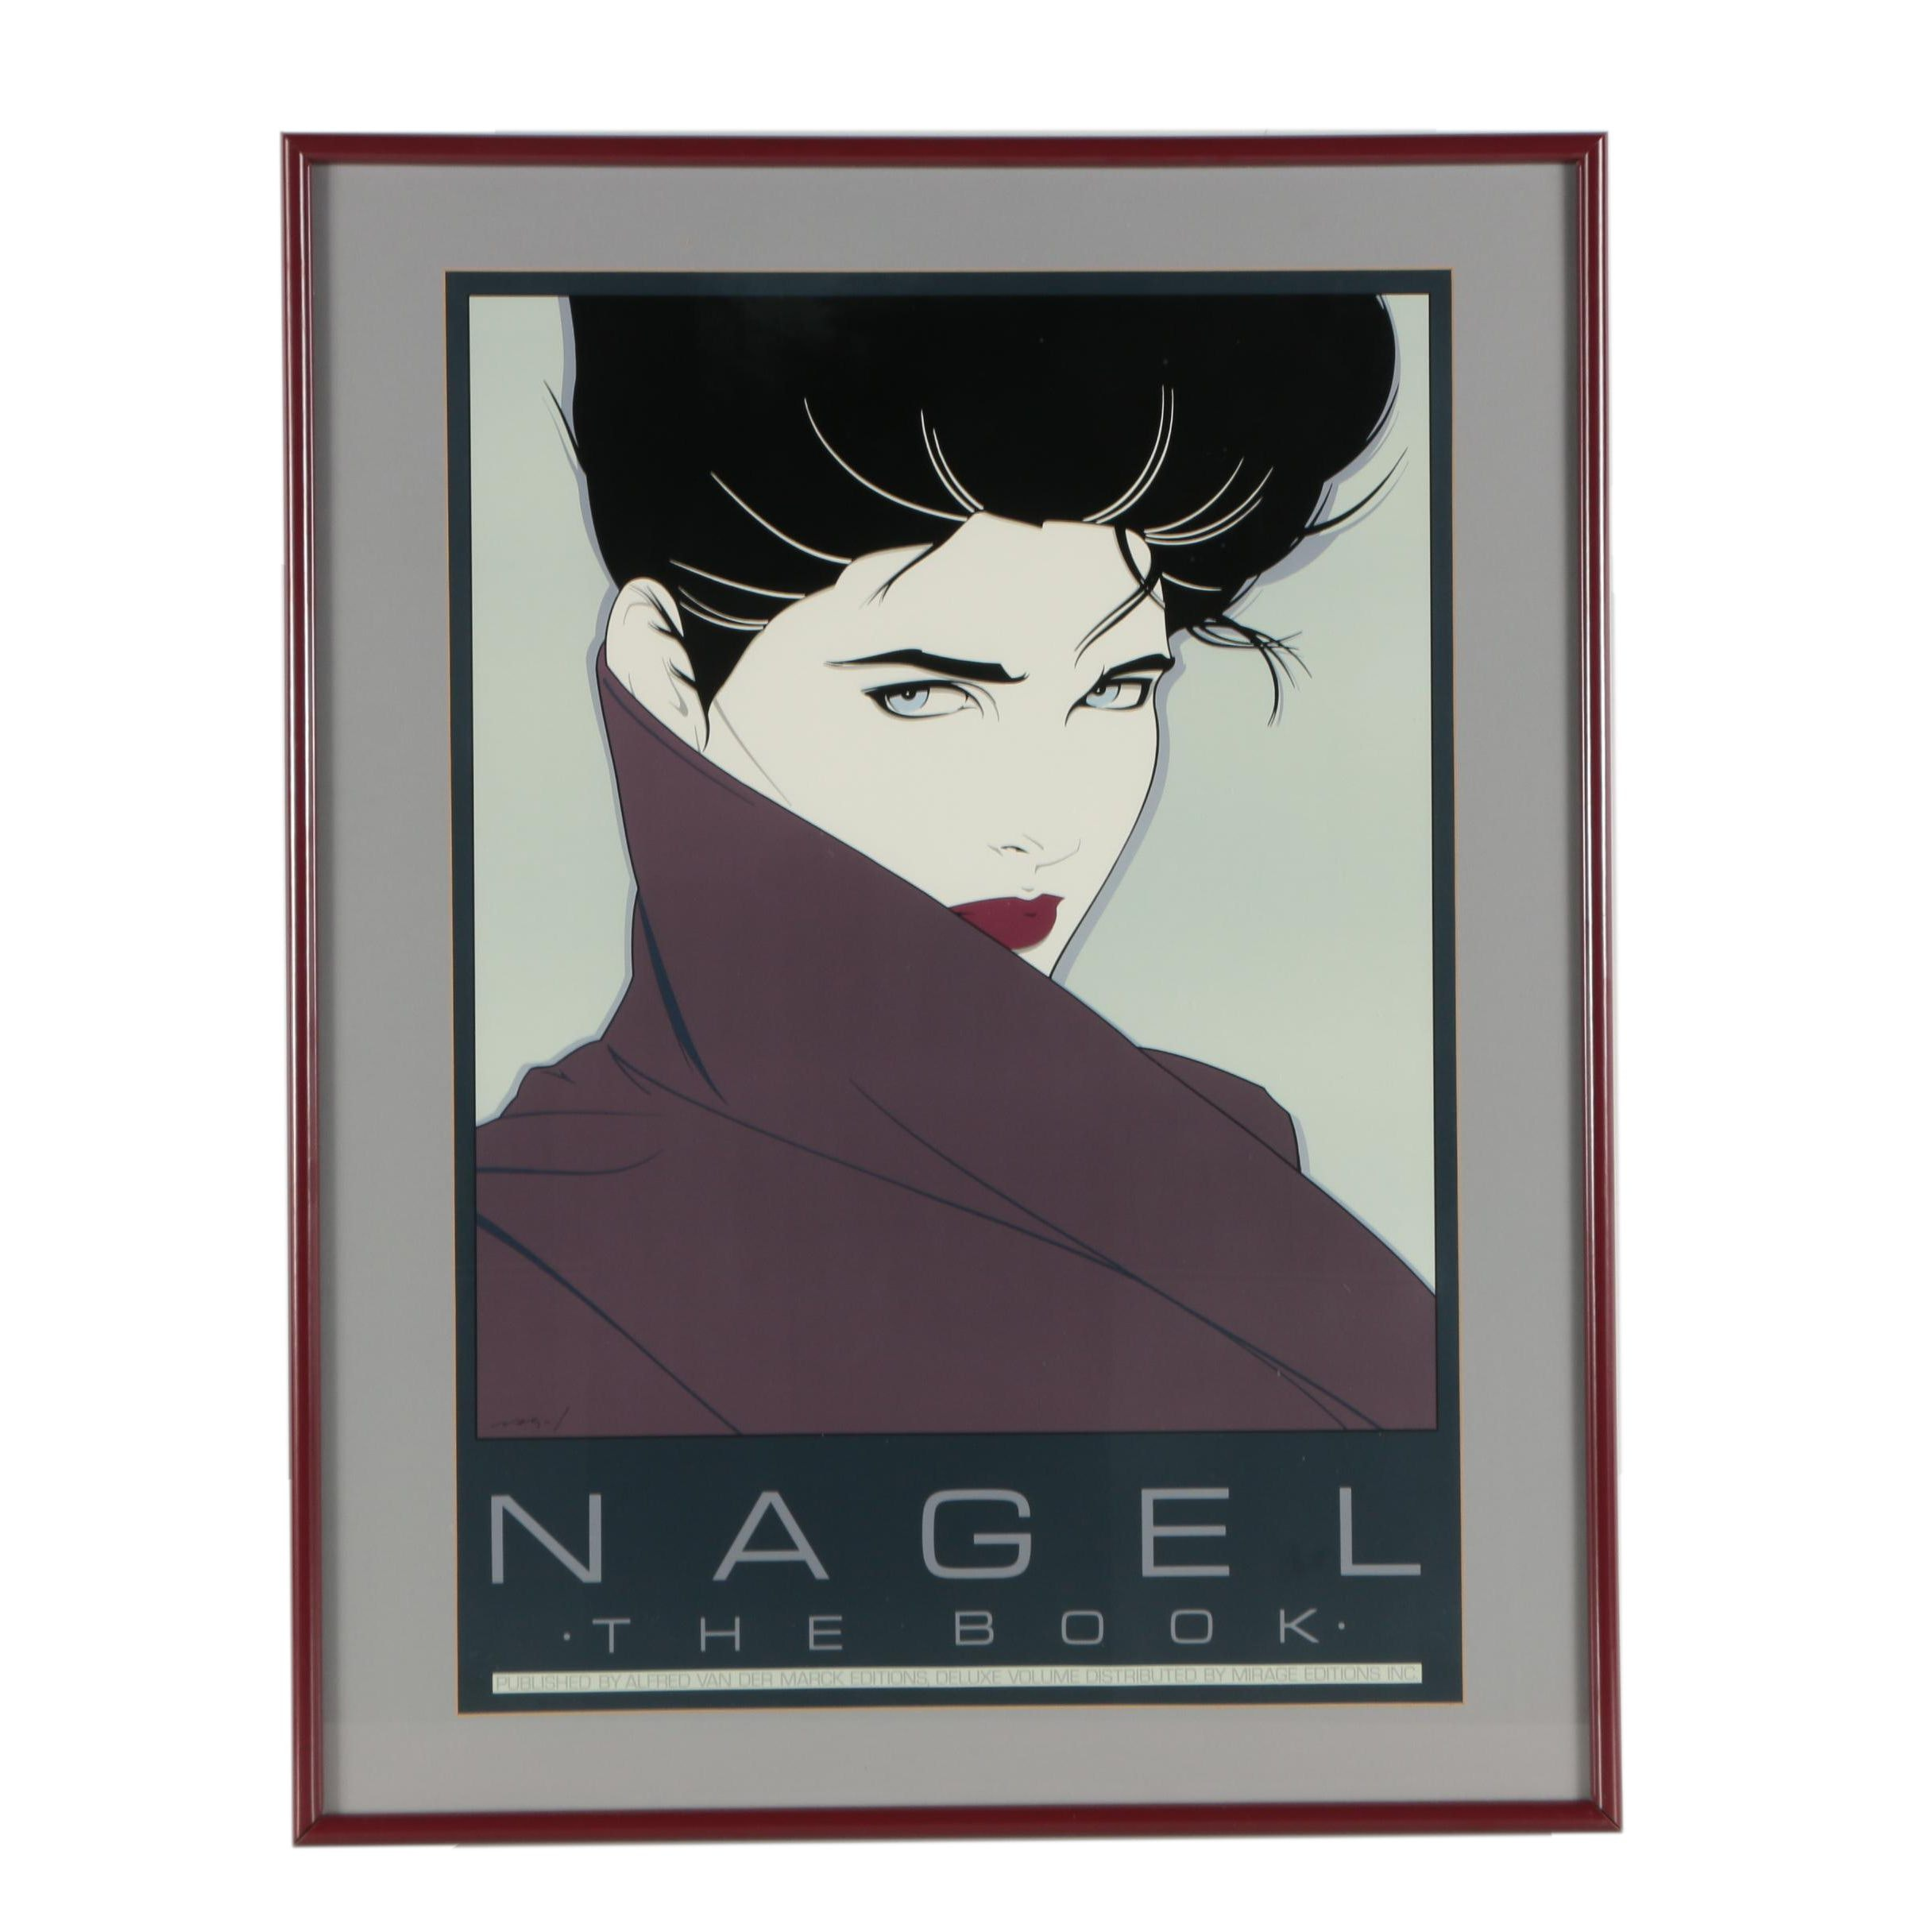 Circa 1980s Serigraph After Patrick Nagel Quot Nagel The Book